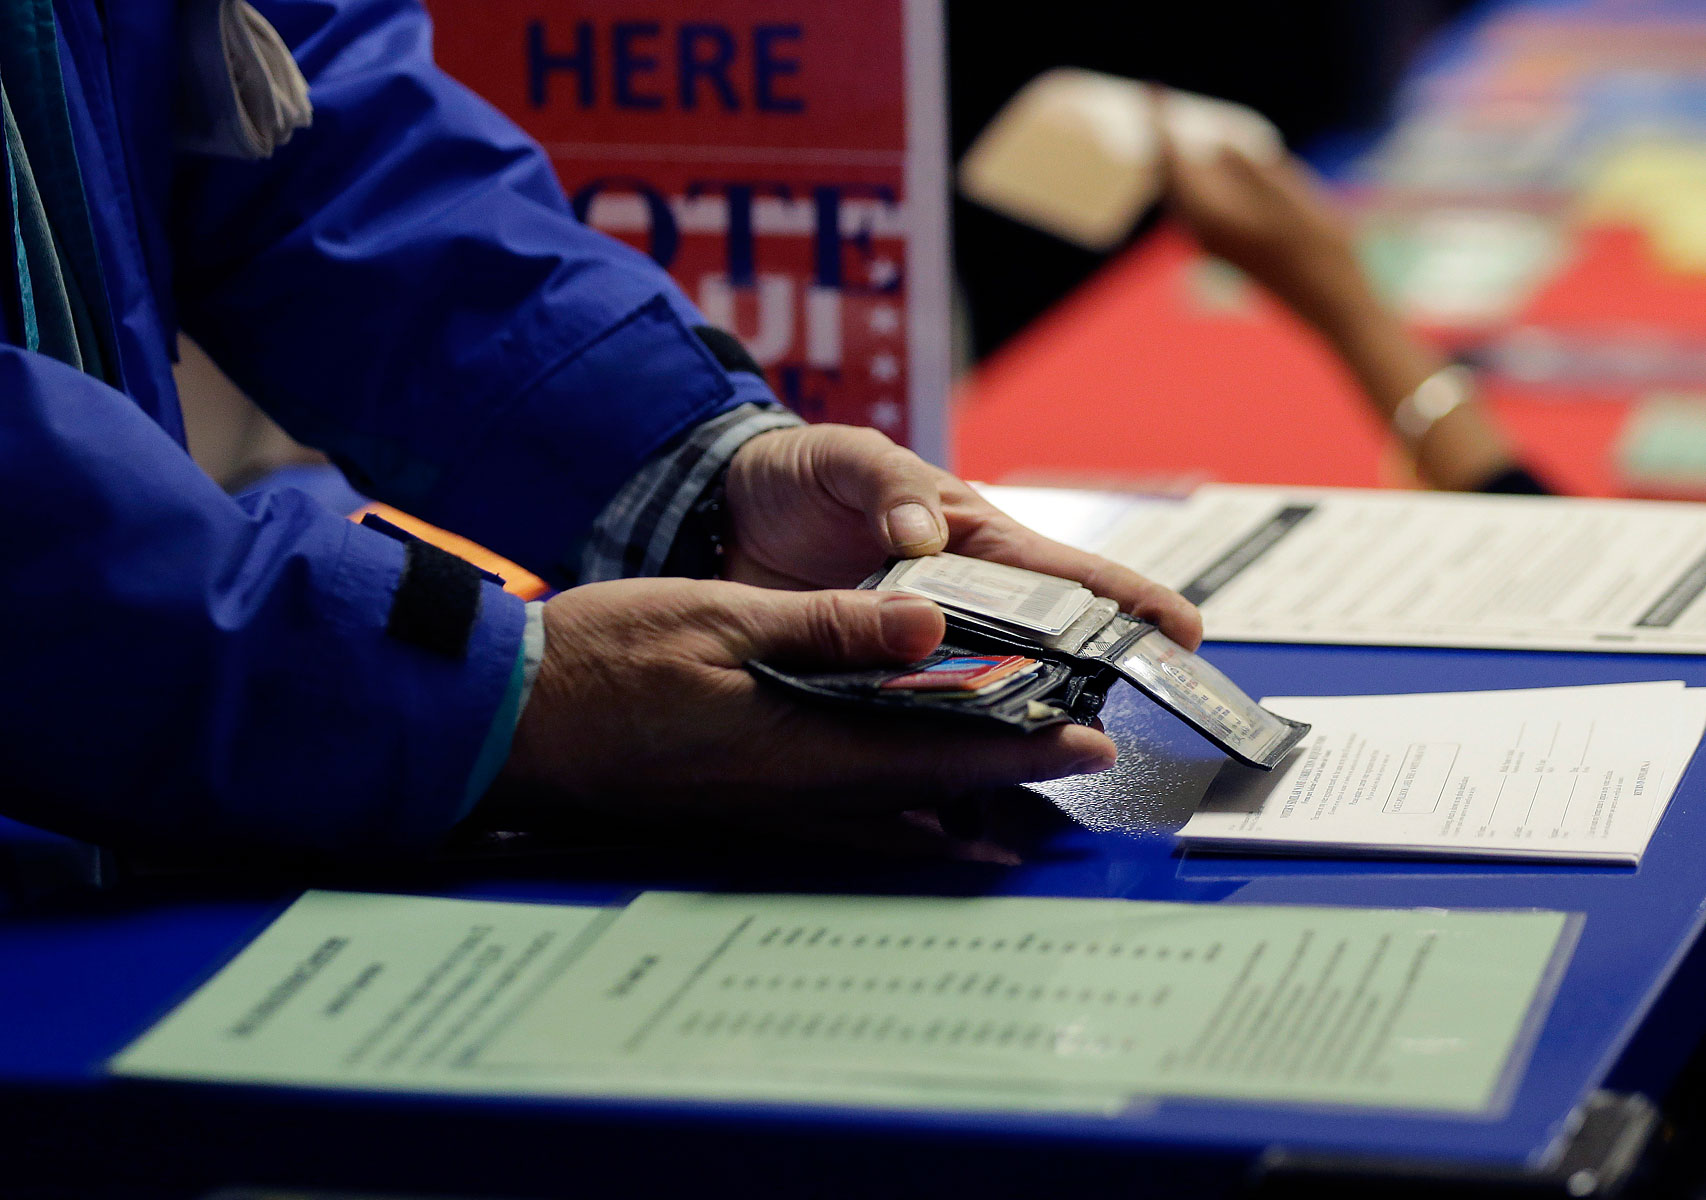 A voter shows his photo identification to an election official at an early voting polling site, in Austin, Texas on Feb. 26, 2014.